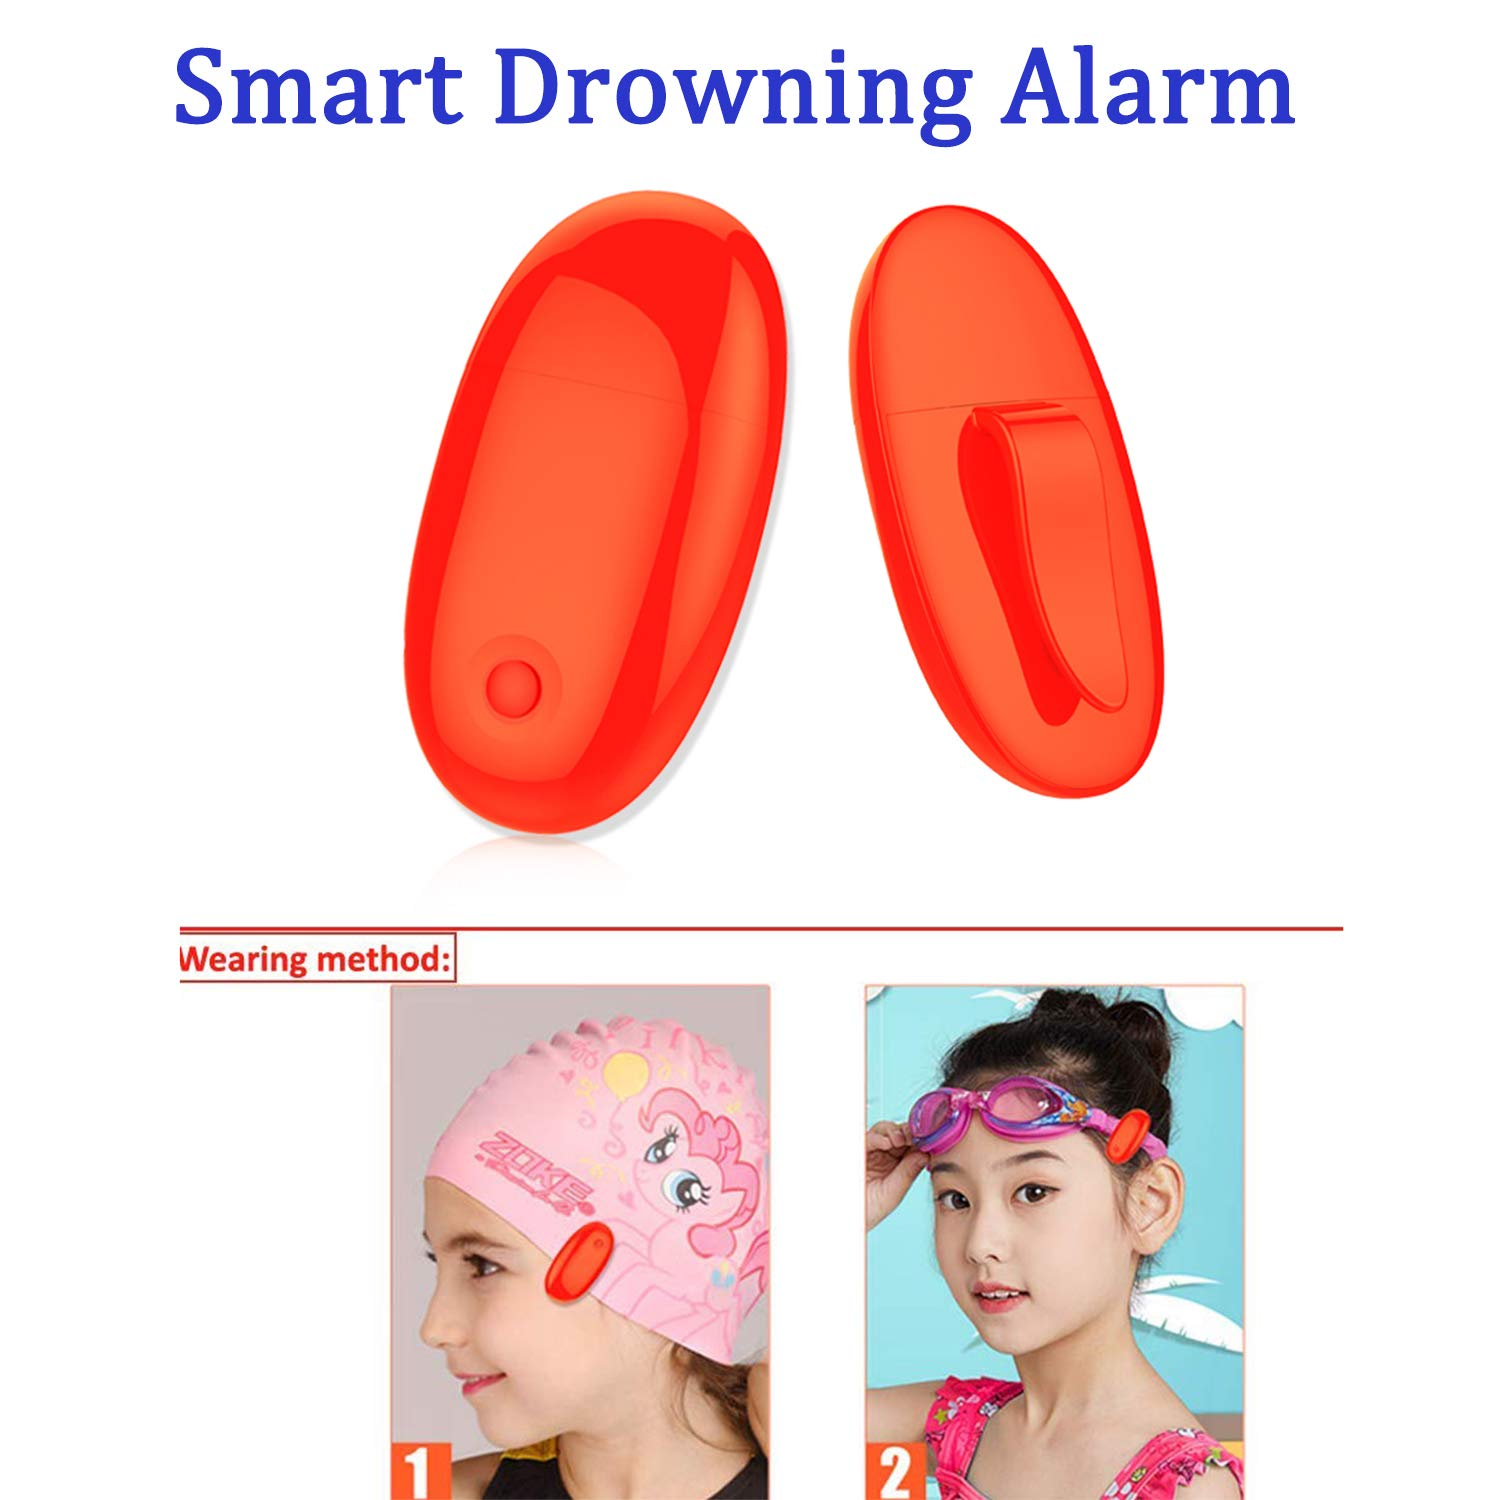 ABREMOE Drowning Alarm Pool Safety Alarm for kid Wireless Smart Water Sensor Alarm with Red Light Indicator,Clip on Swimming Cap or Goggles Bandage Child Safety Drowning Protection for Pools by ABREMOE